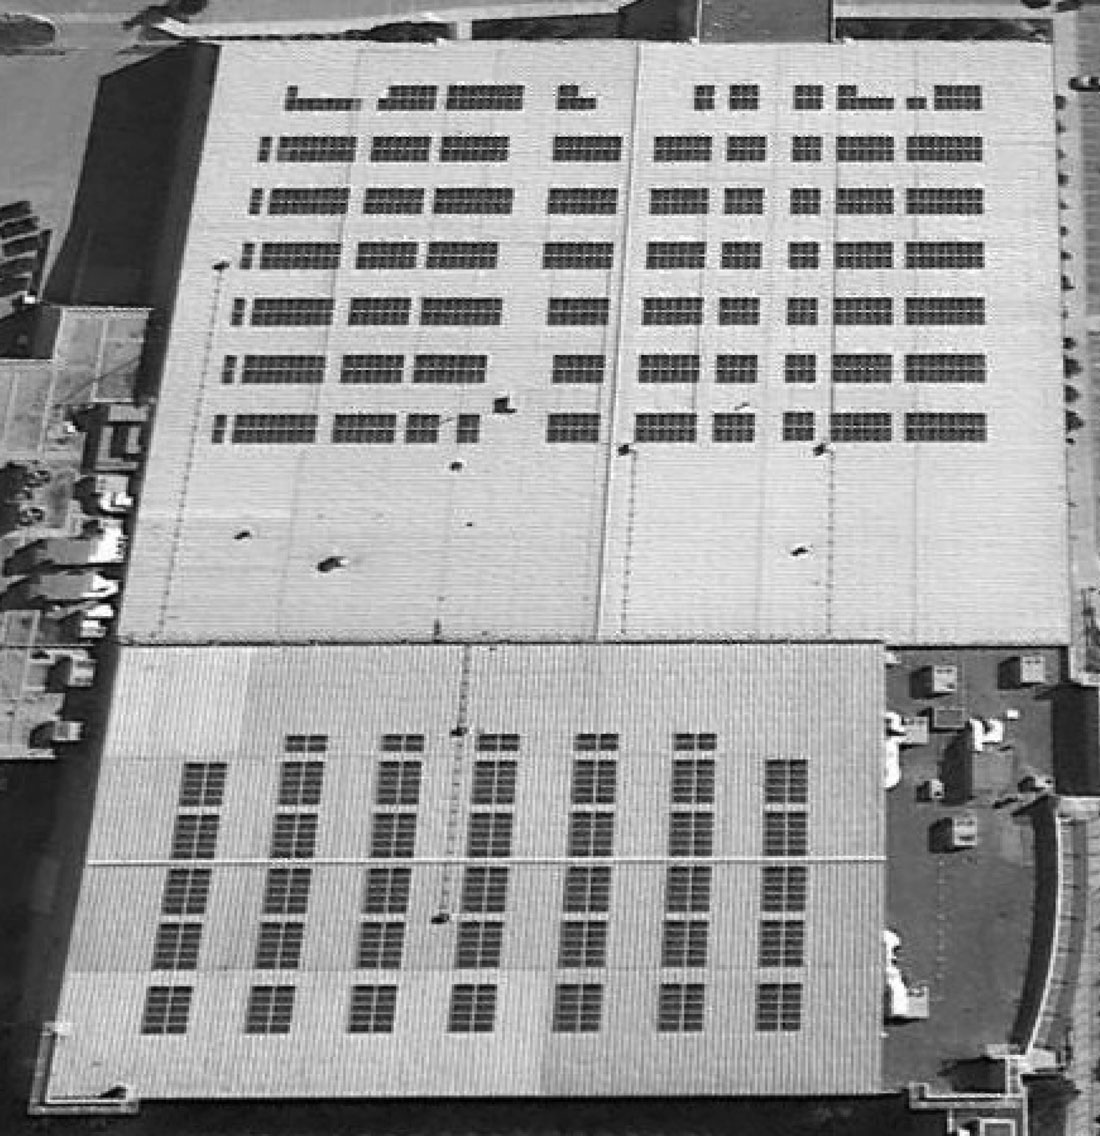 Western Fair Arenas Aerial View of solar panels installation by Solera